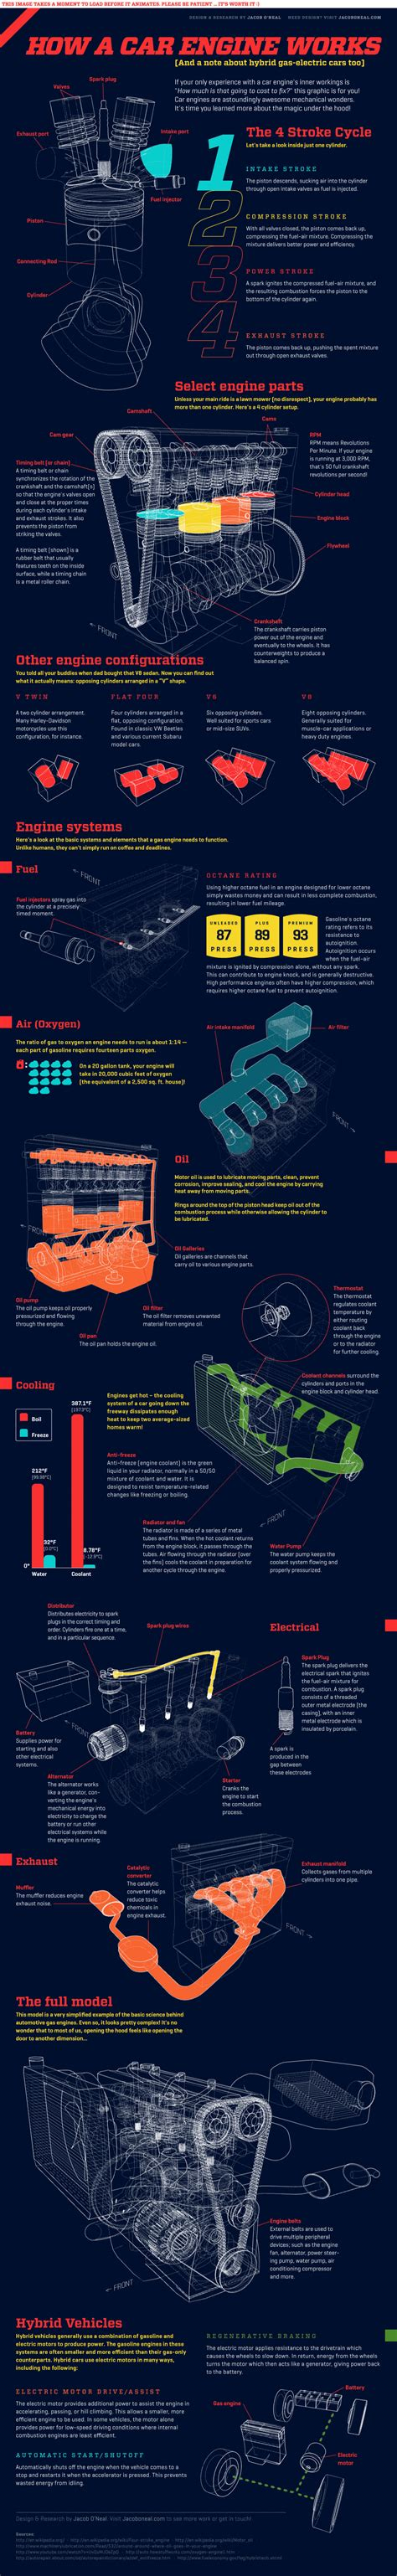 how a car engine works gigazine how a car engine works moving gif picture james simpson